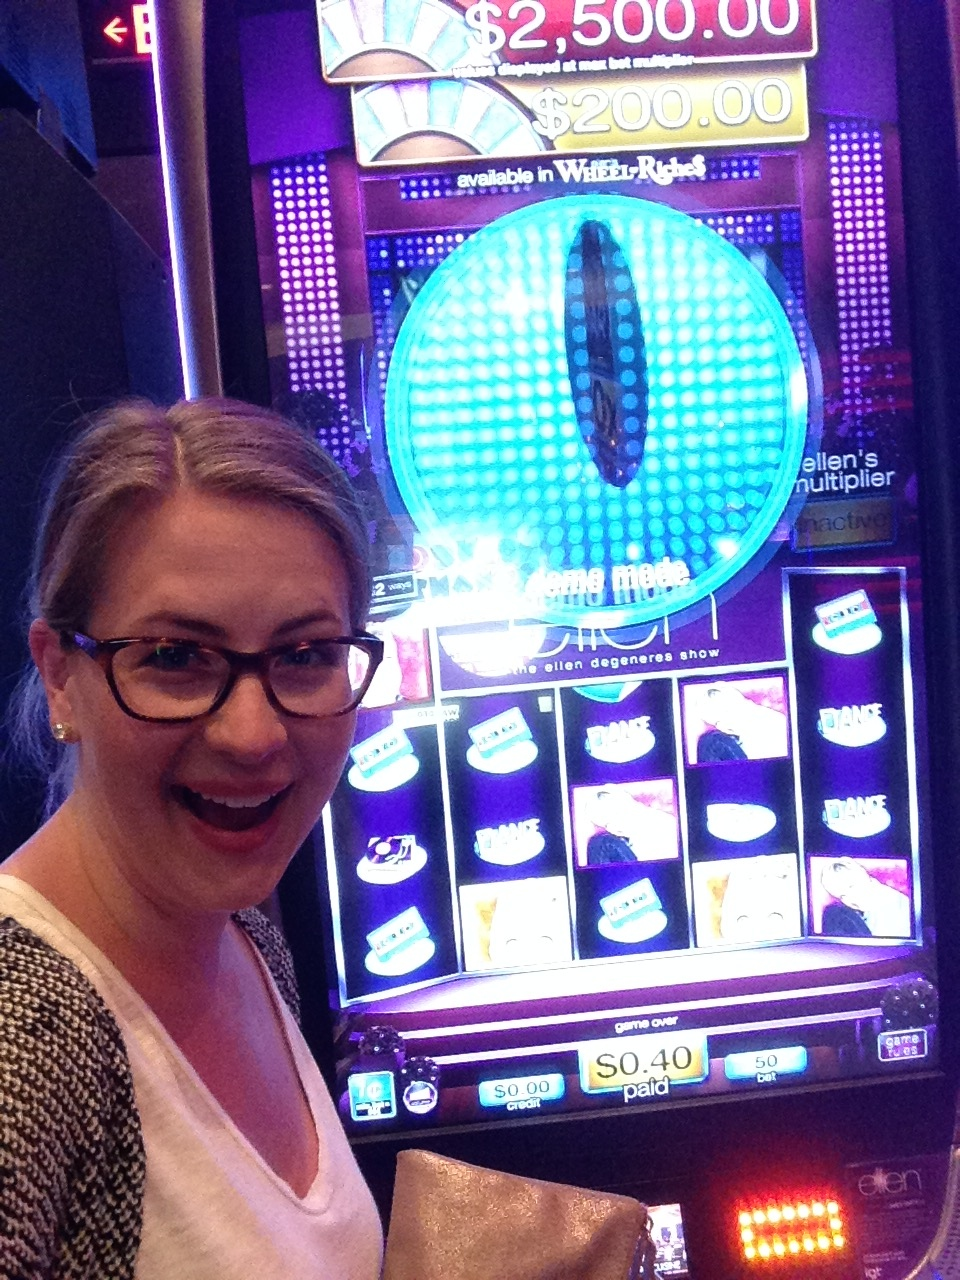 I love Ellen and finding her slot machine in Atlantic Ctiy was pretty exciting!